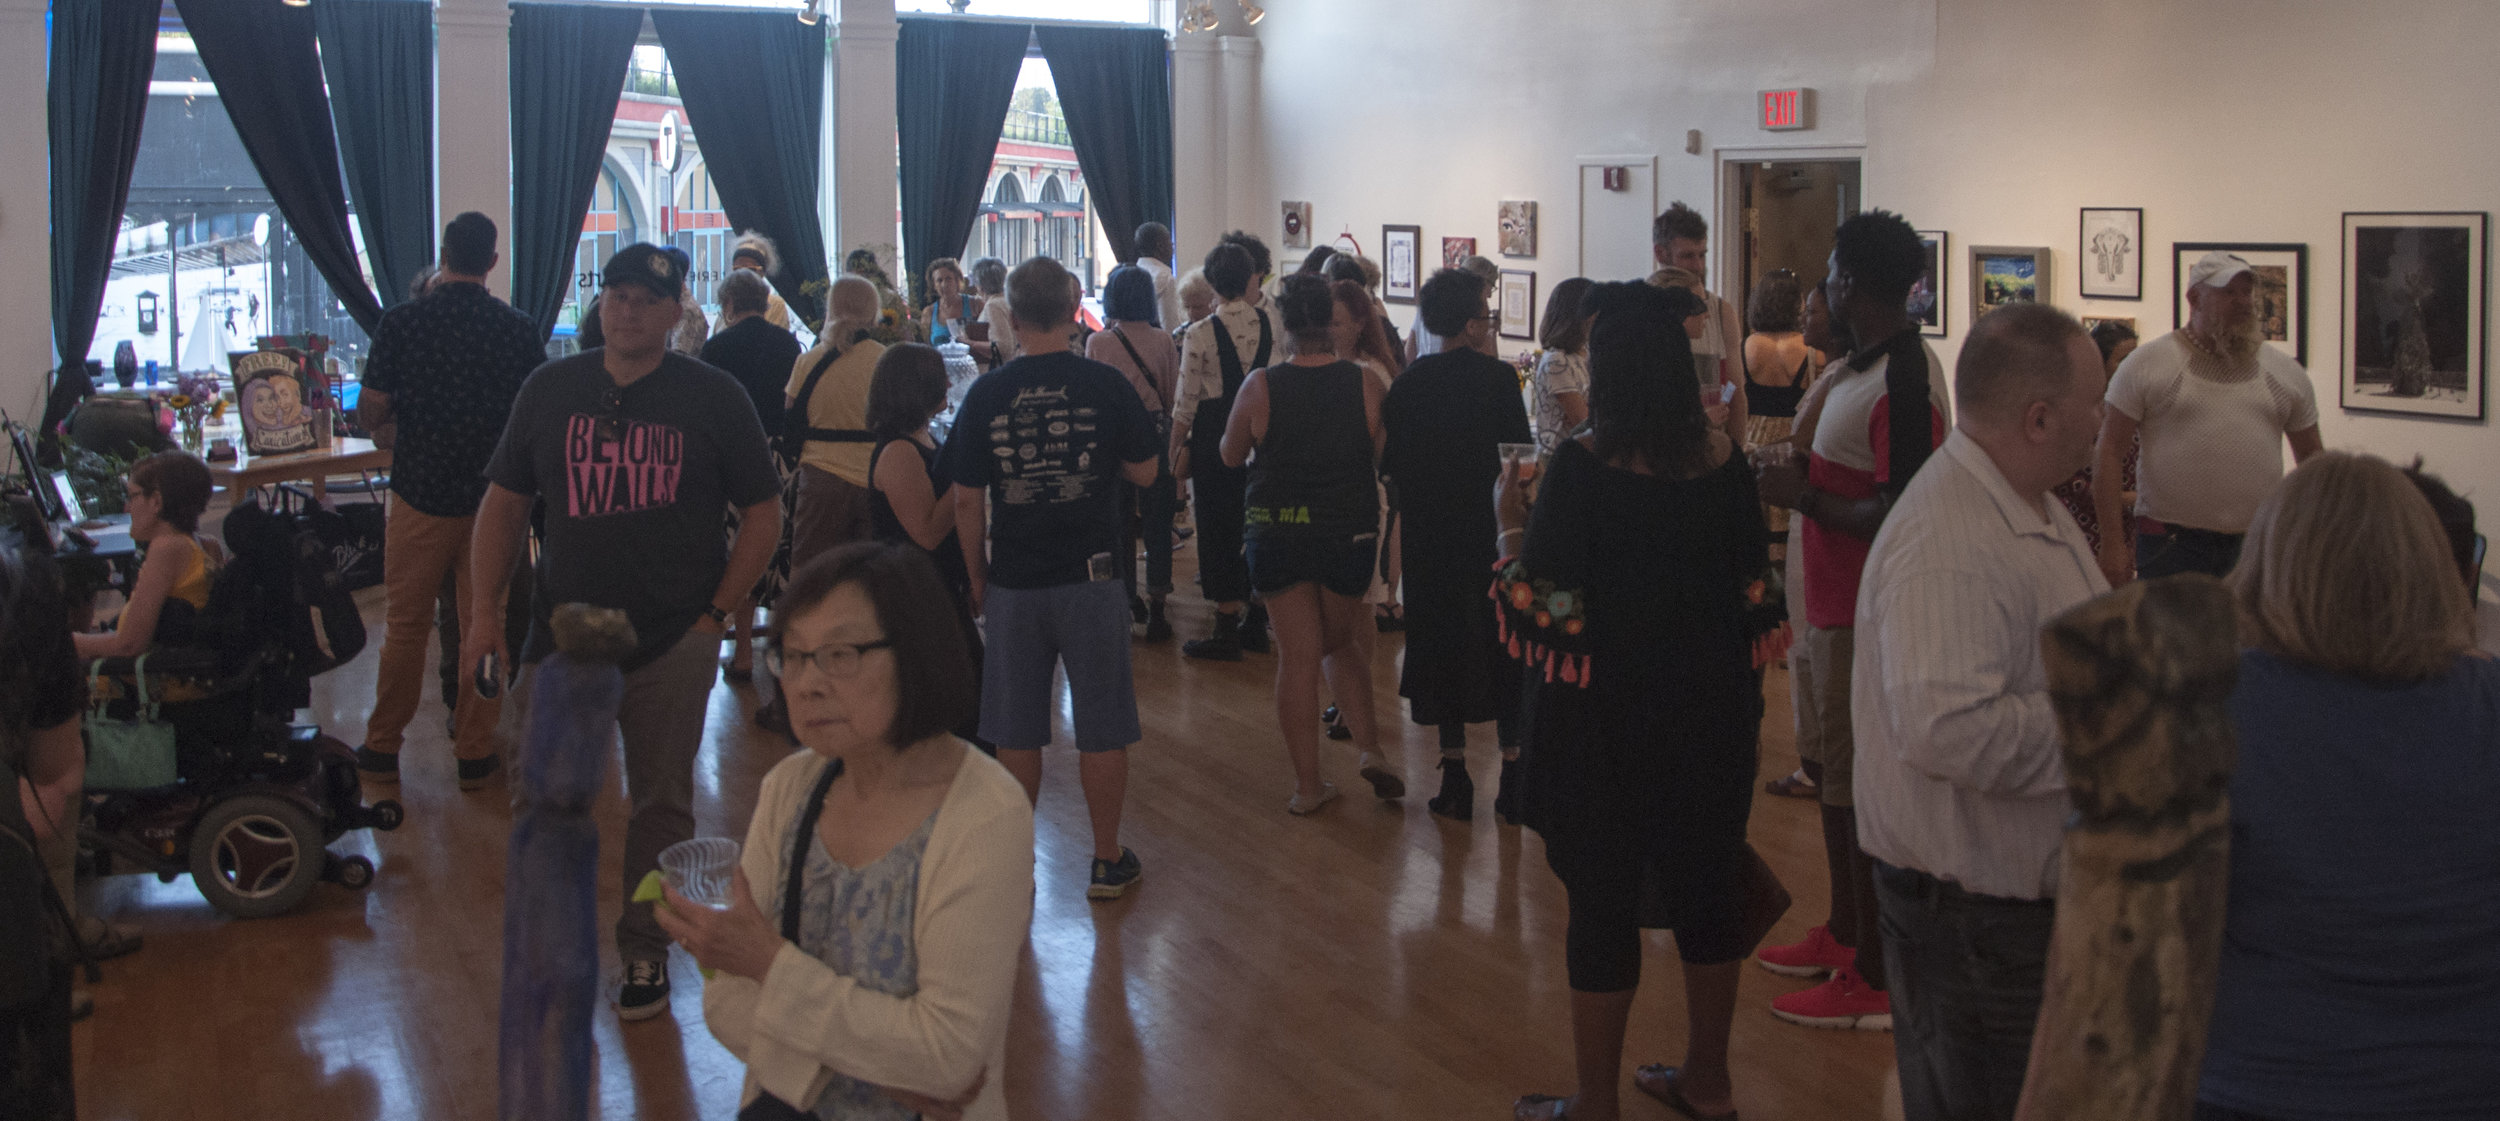 August 2, 2019 Higher Purpose Opening Reception. Photo credit Vacant Skye Photography.